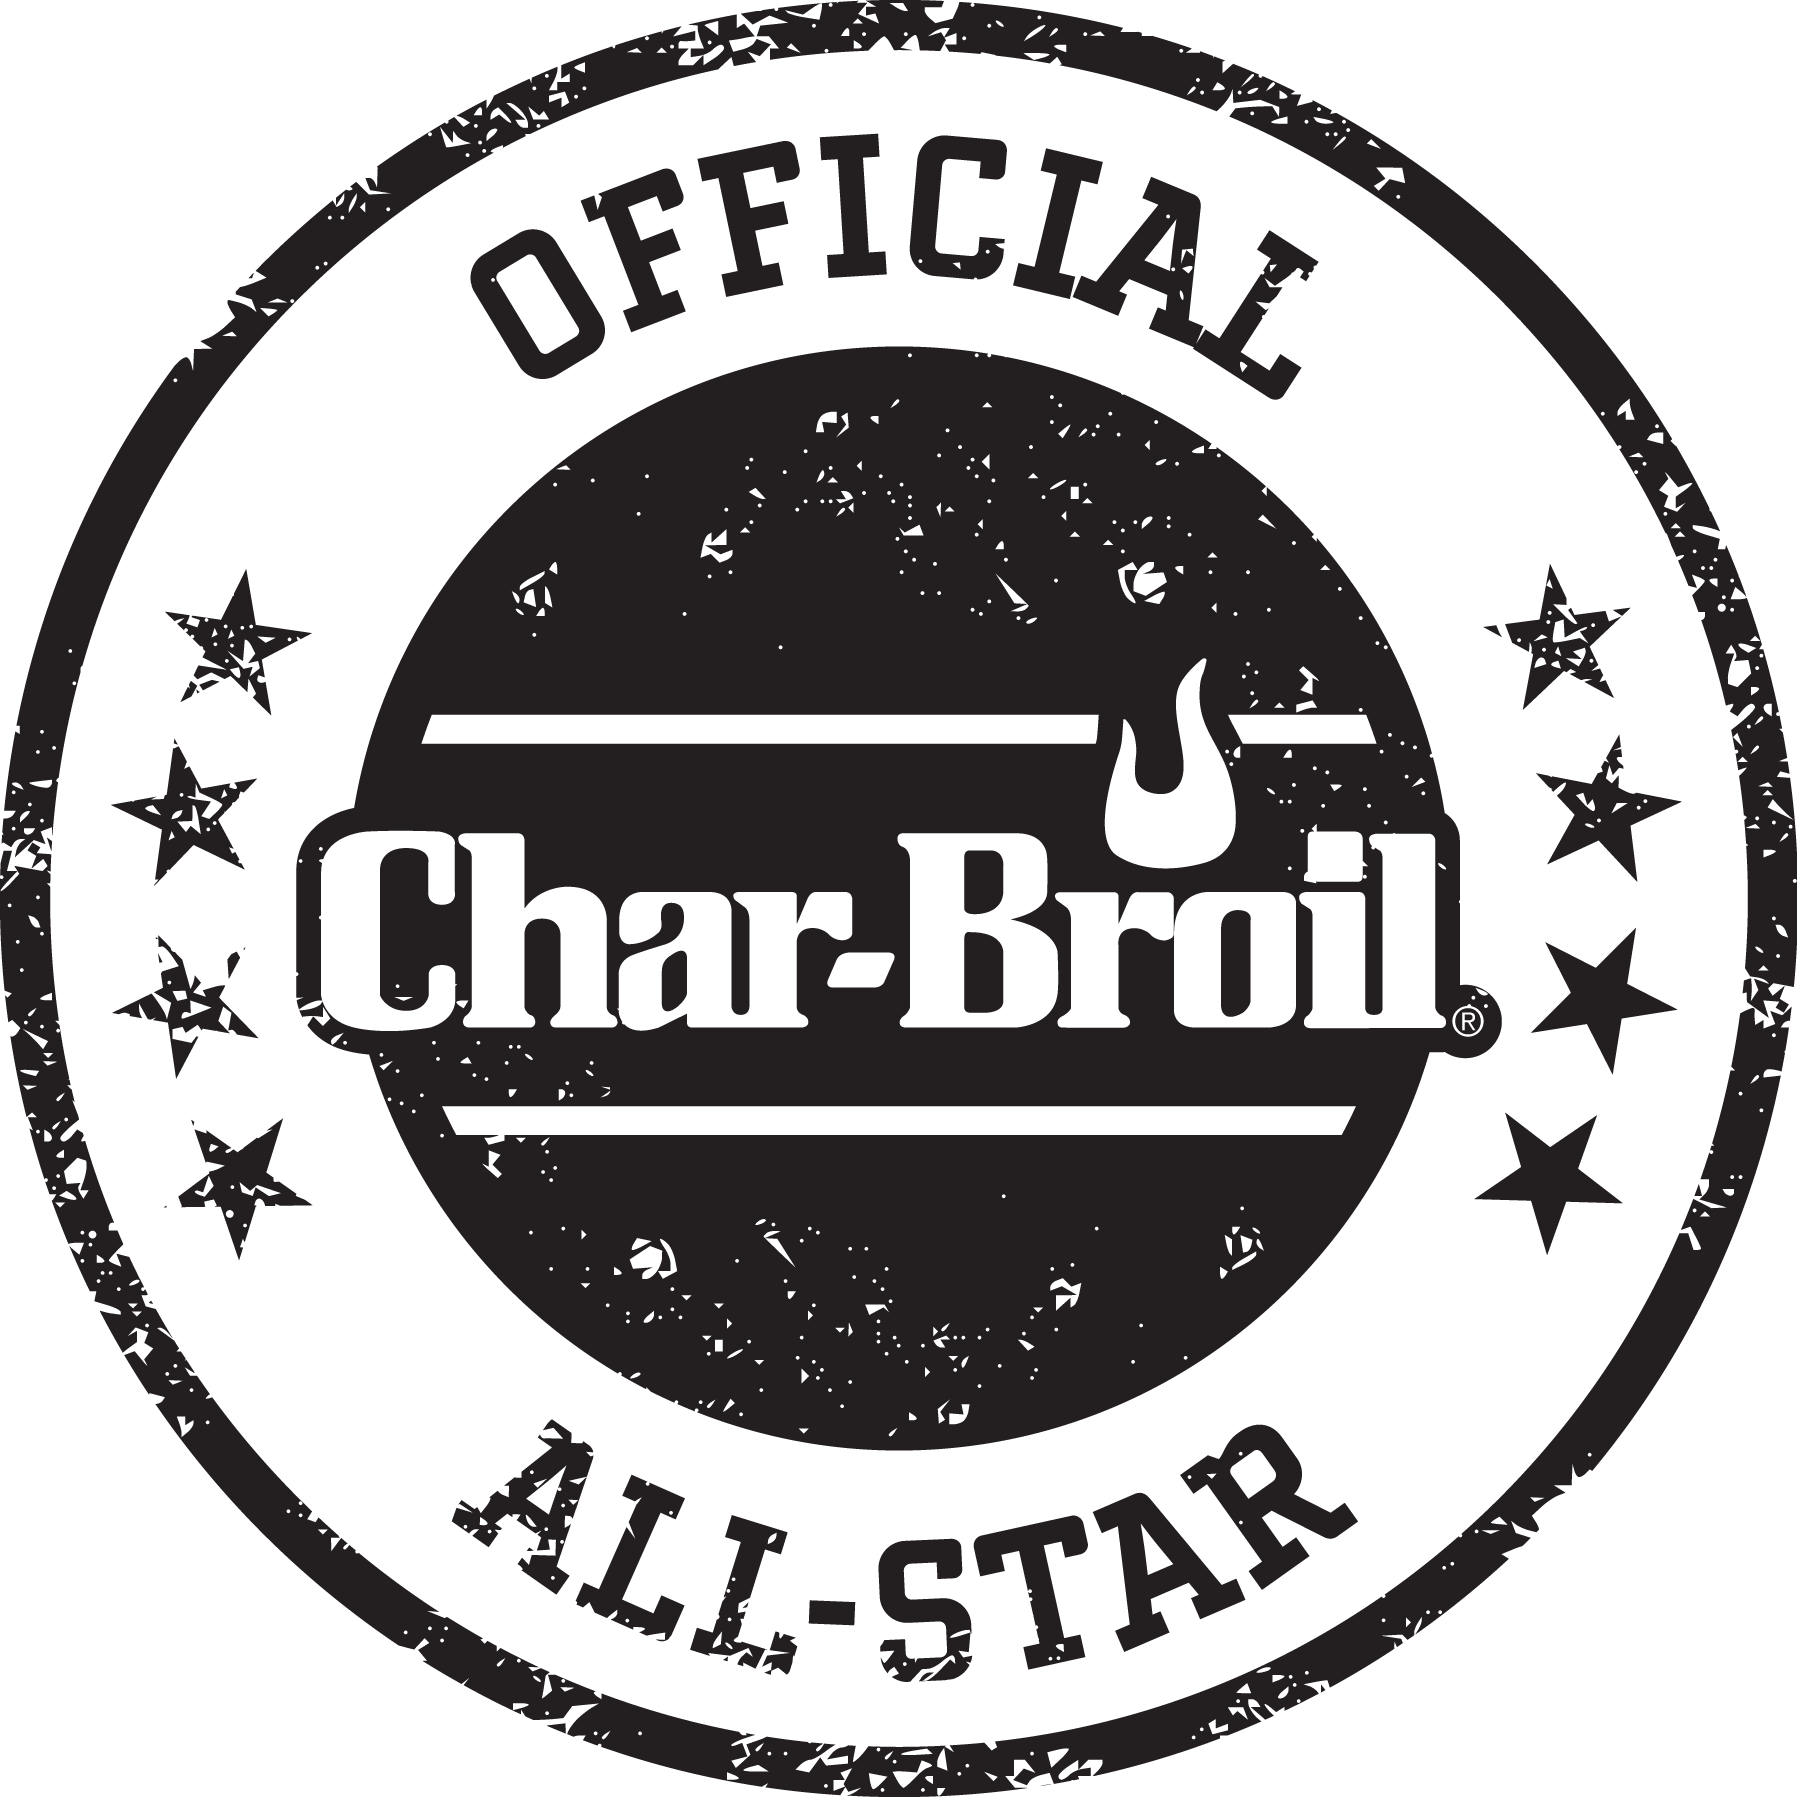 Char-Broil All Star Blogger